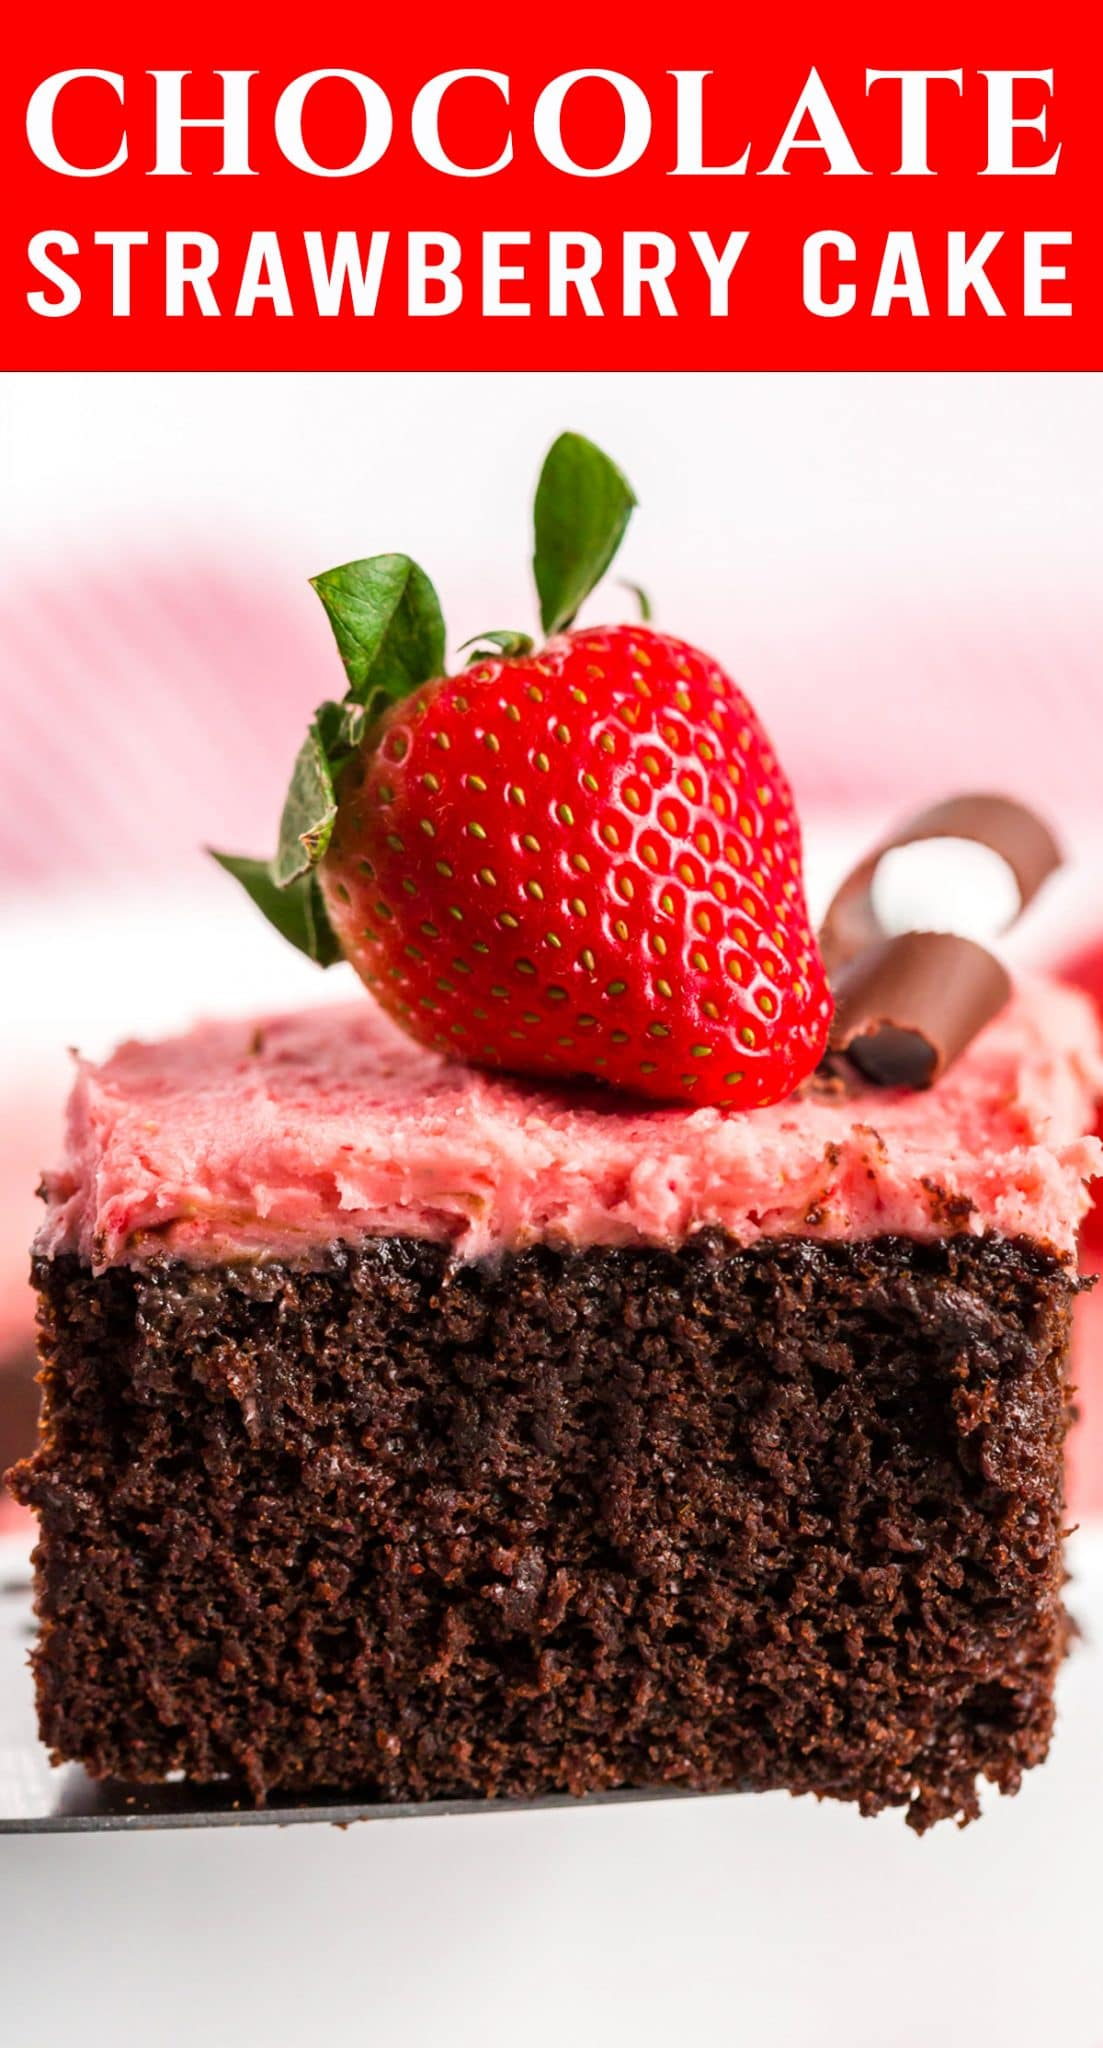 The most amazing chocolate & strawberry combo: 100% homemade Chocolate Strawberry Cake! Everyone can easily make this from scratch cake with delicious flavor. via @thebestcakerecipes